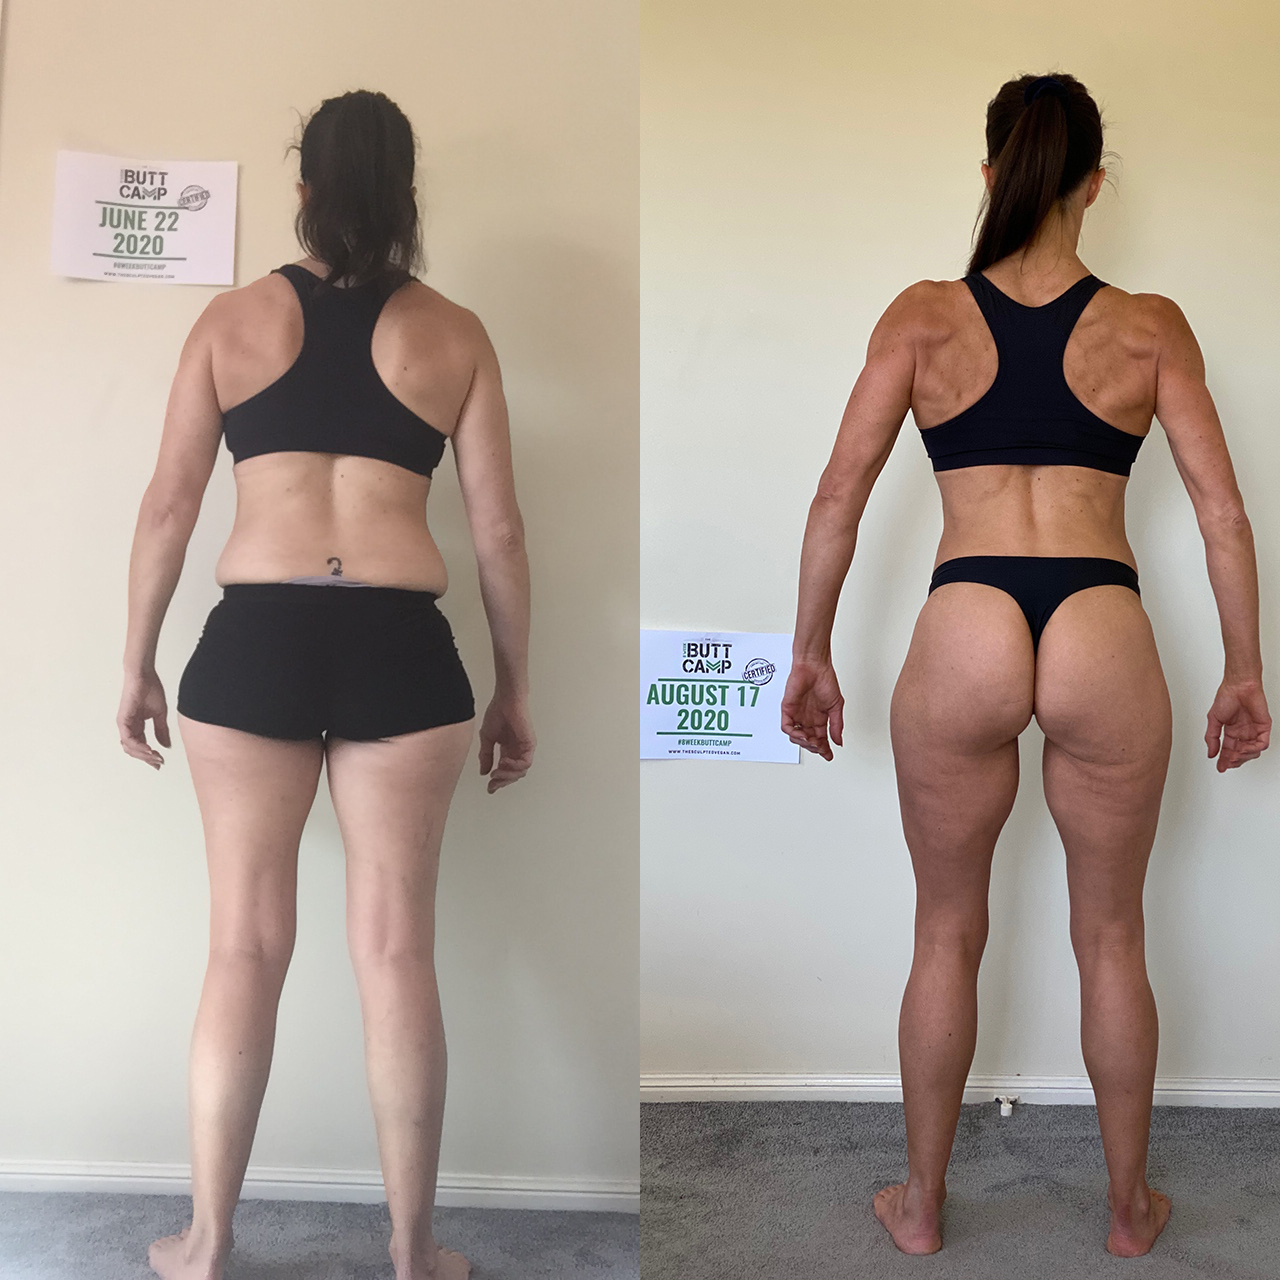 The 8 Week Butt Camp Sculpt Glutes Annihilate Fat For men and women who are looking to get a rounder, firmer, stronger butt. the 8 week butt camp sculpt glutes